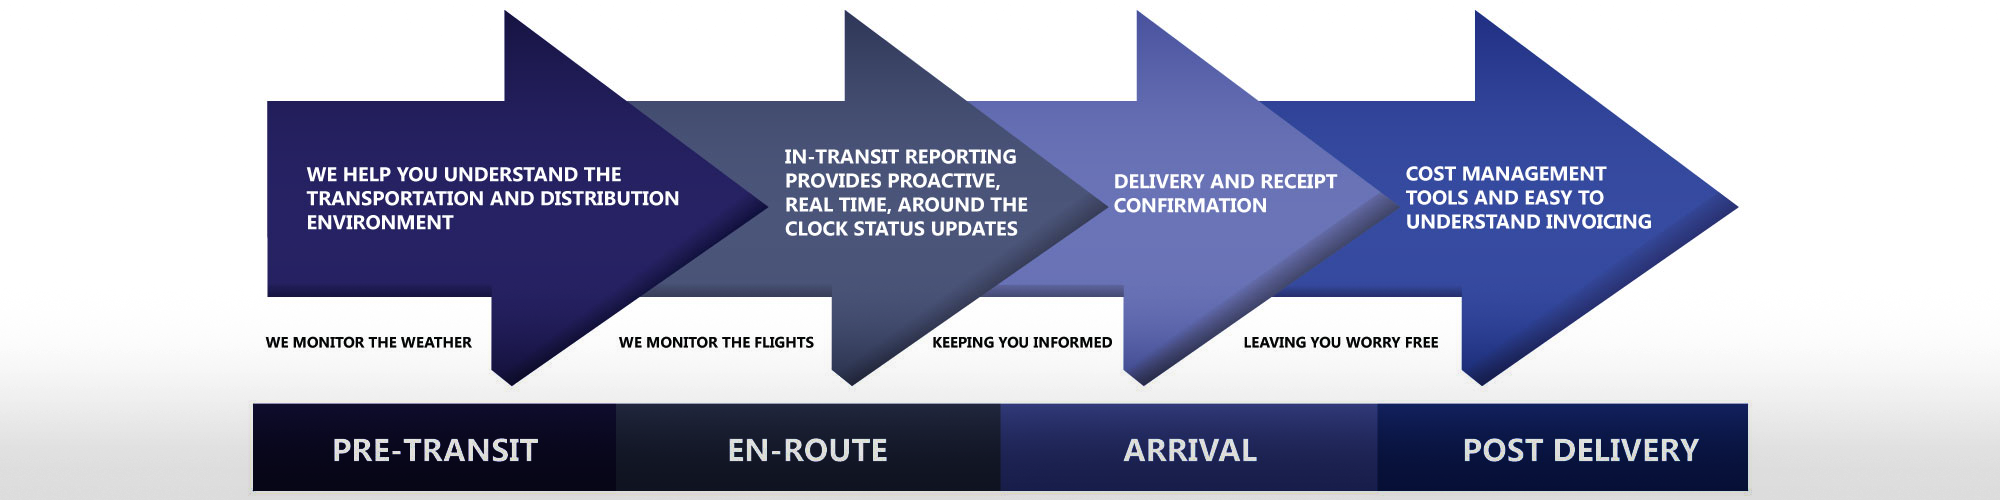 In-Transit- Monitoring Shipments